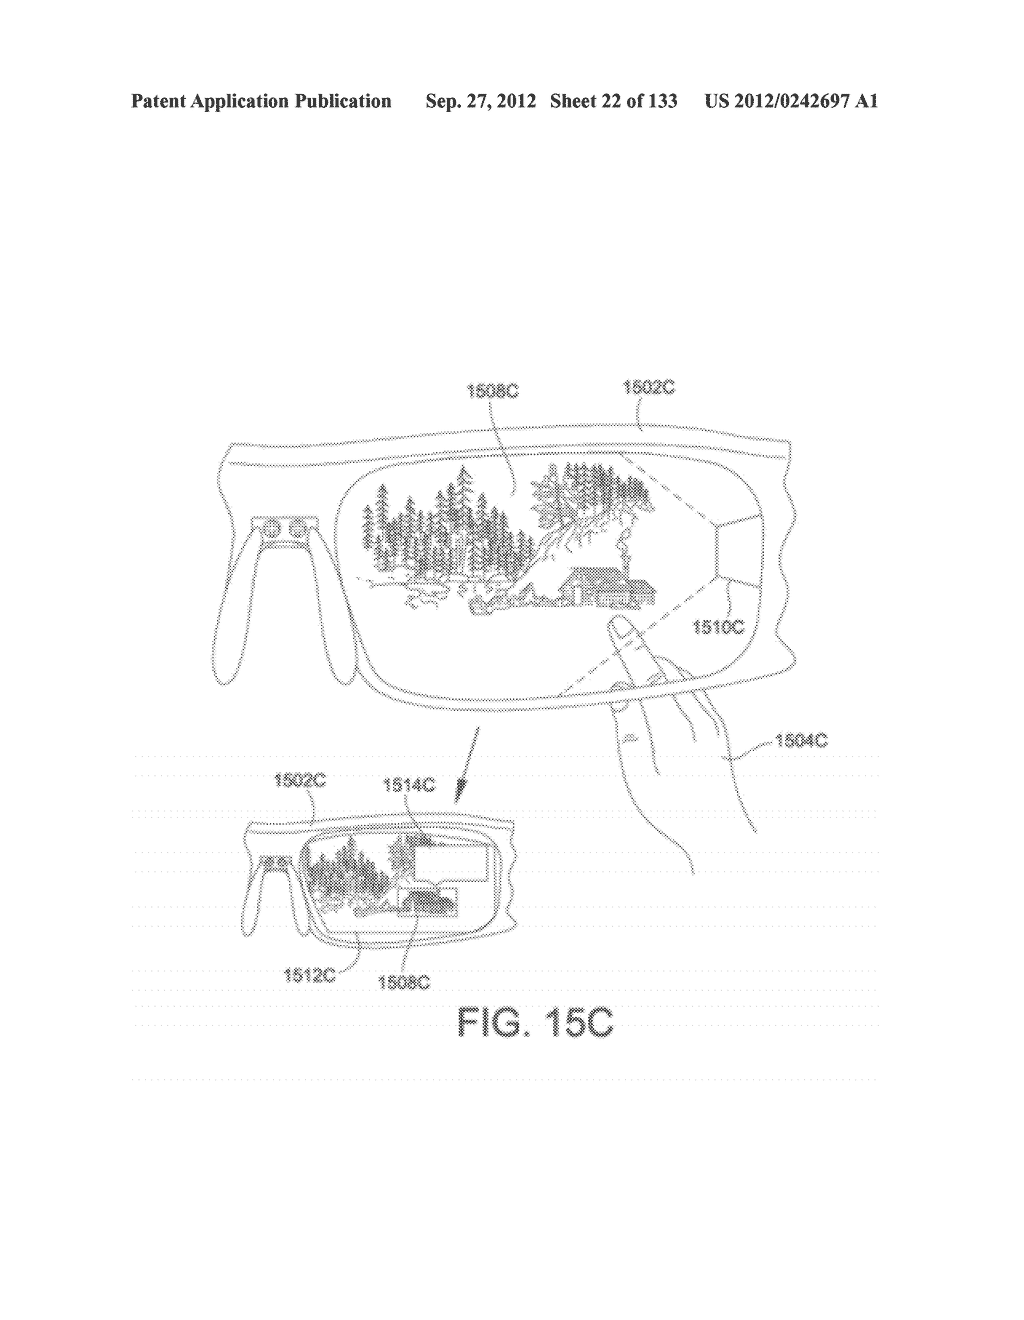 SEE-THROUGH NEAR-EYE DISPLAY GLASSES WITH THE OPTICAL ASSEMBLY INCLUDING     ABSORPTIVE POLARIZERS OR ANTI-REFLECTIVE COATINGS TO REDUCE STRAY LIGHT - diagram, schematic, and image 23